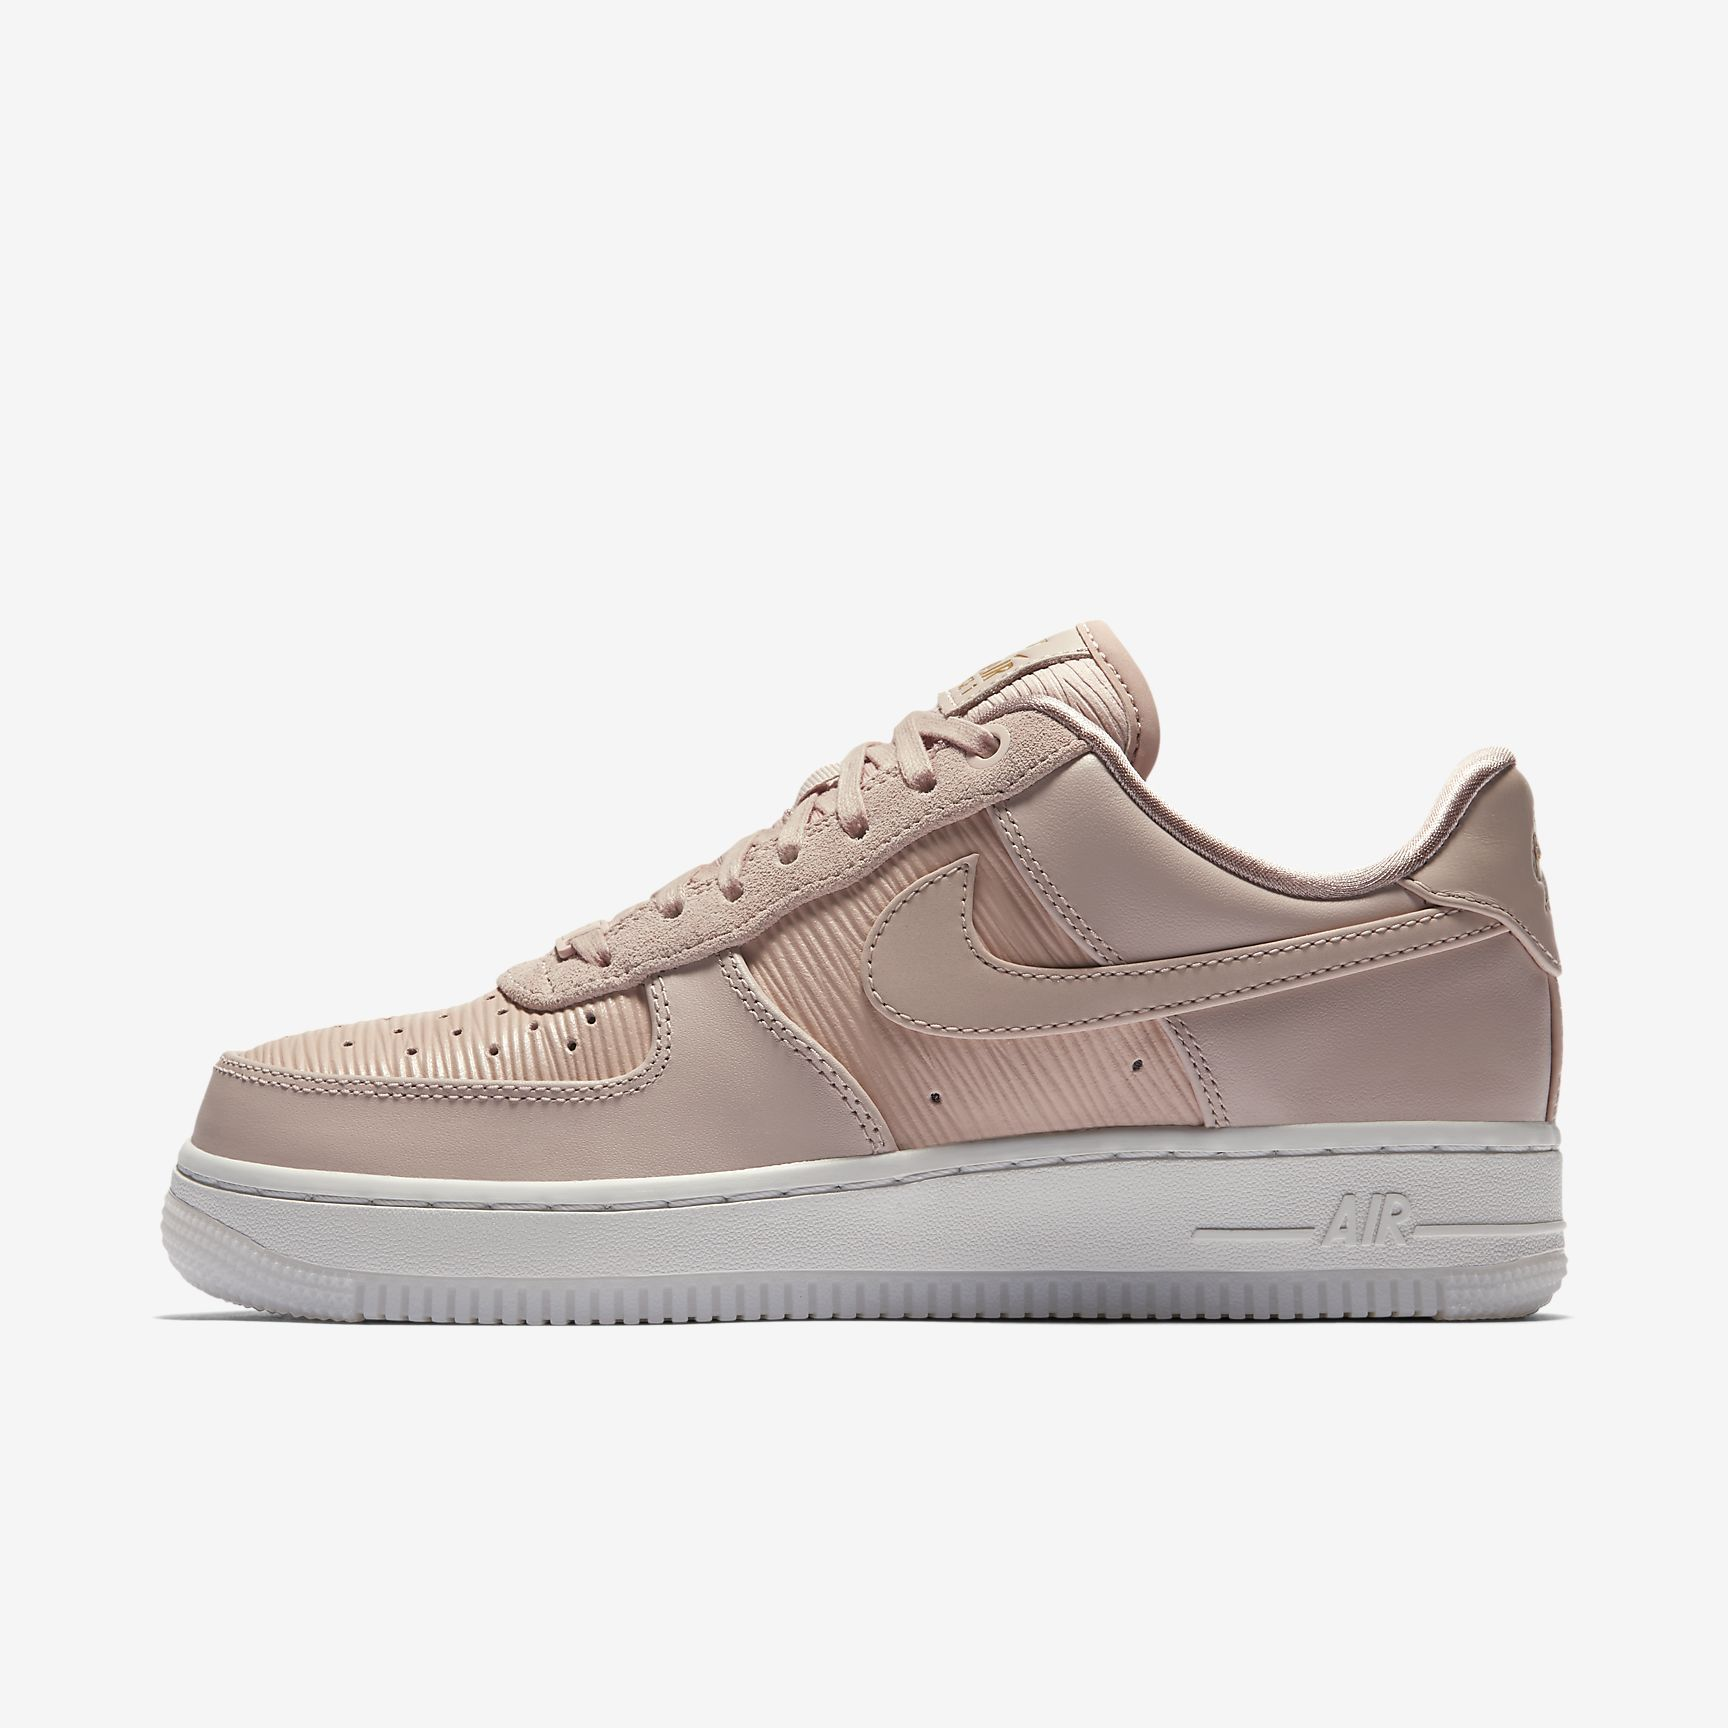 official photos 56dfe 1235c Calzado para mujer Nike Air Force 1  07 LX